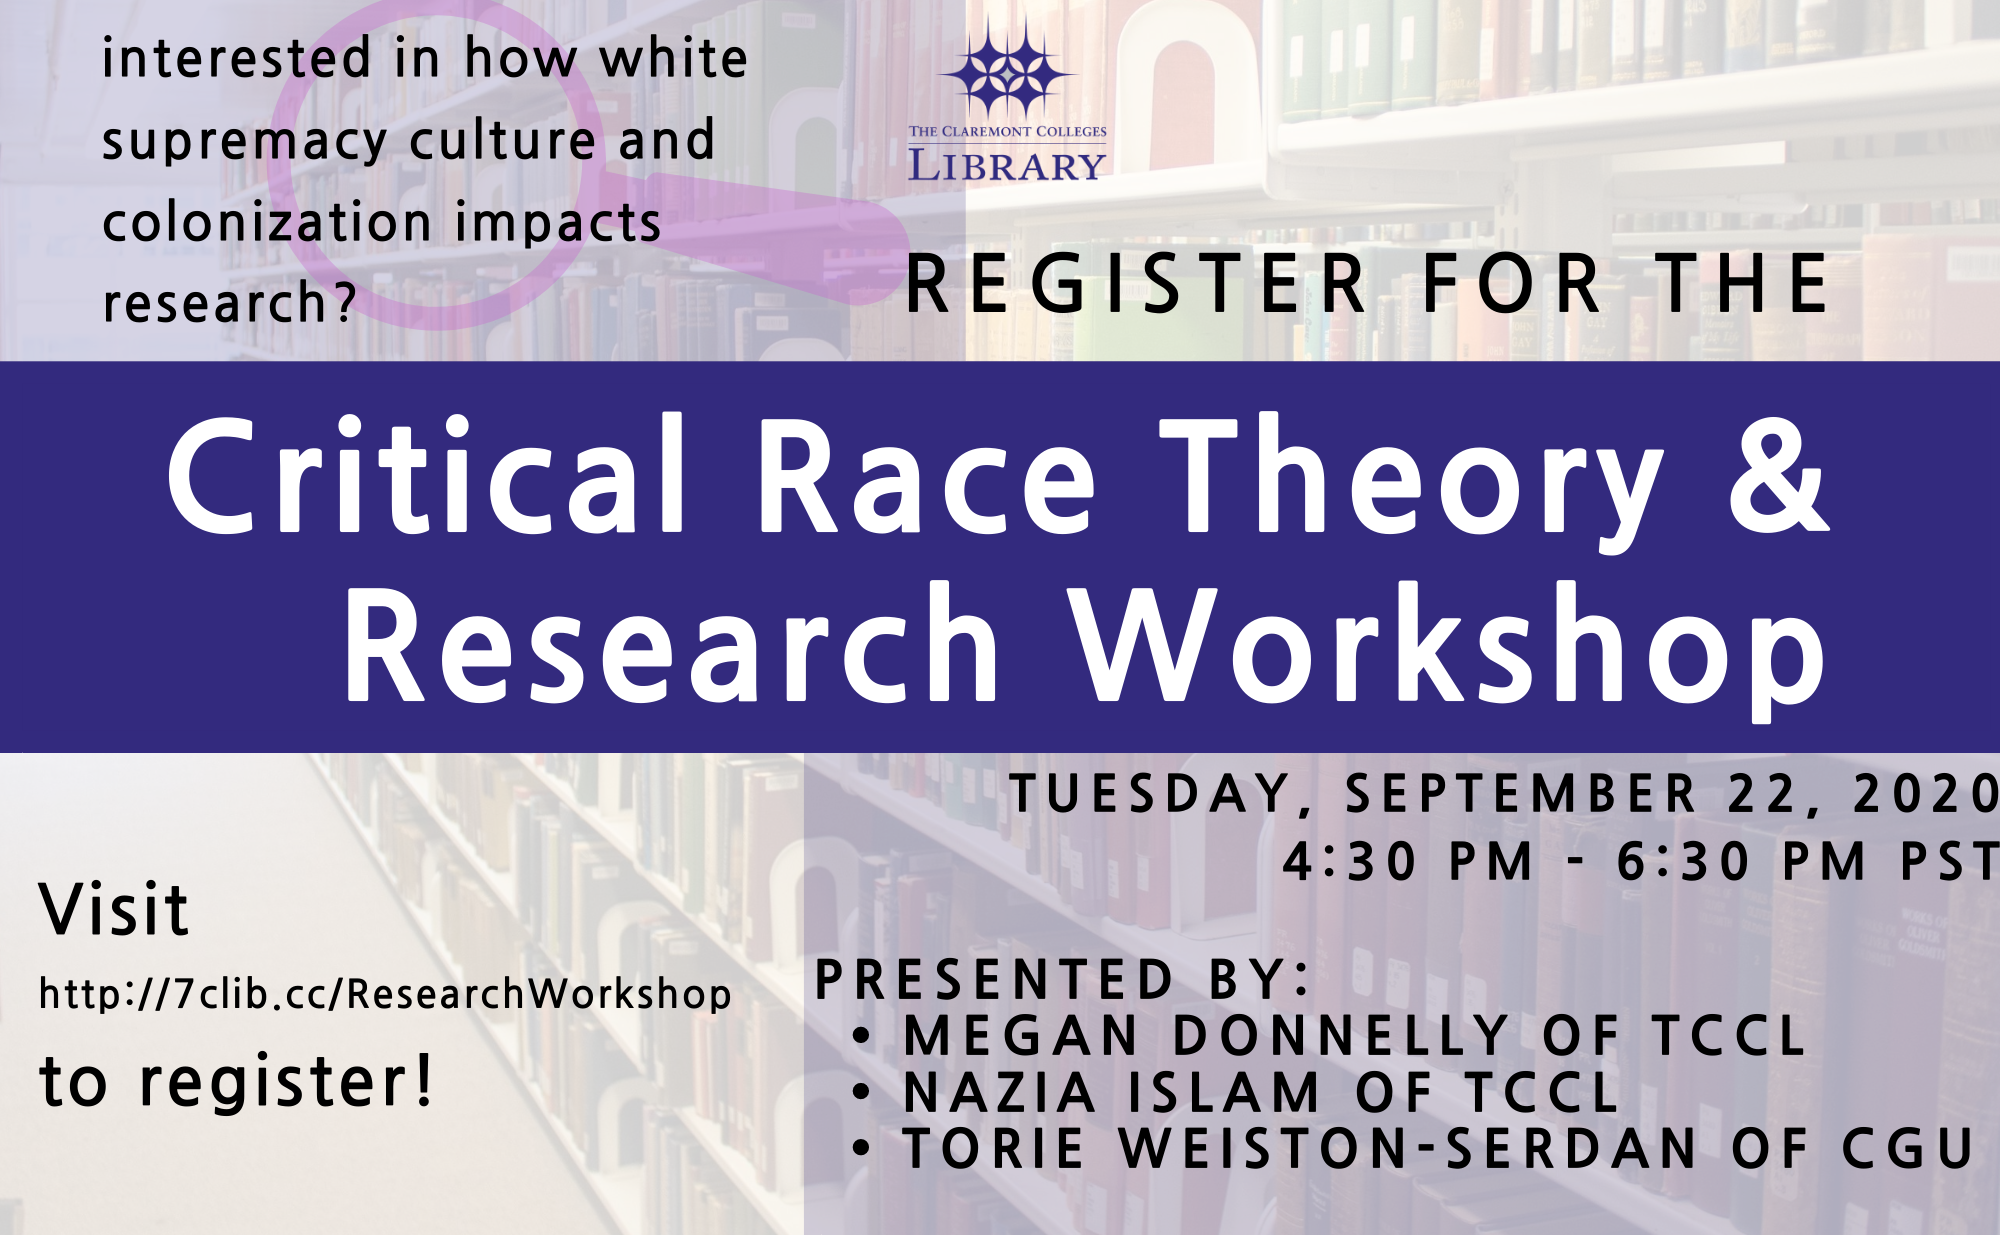 Critical Race Theory and Research Workshop